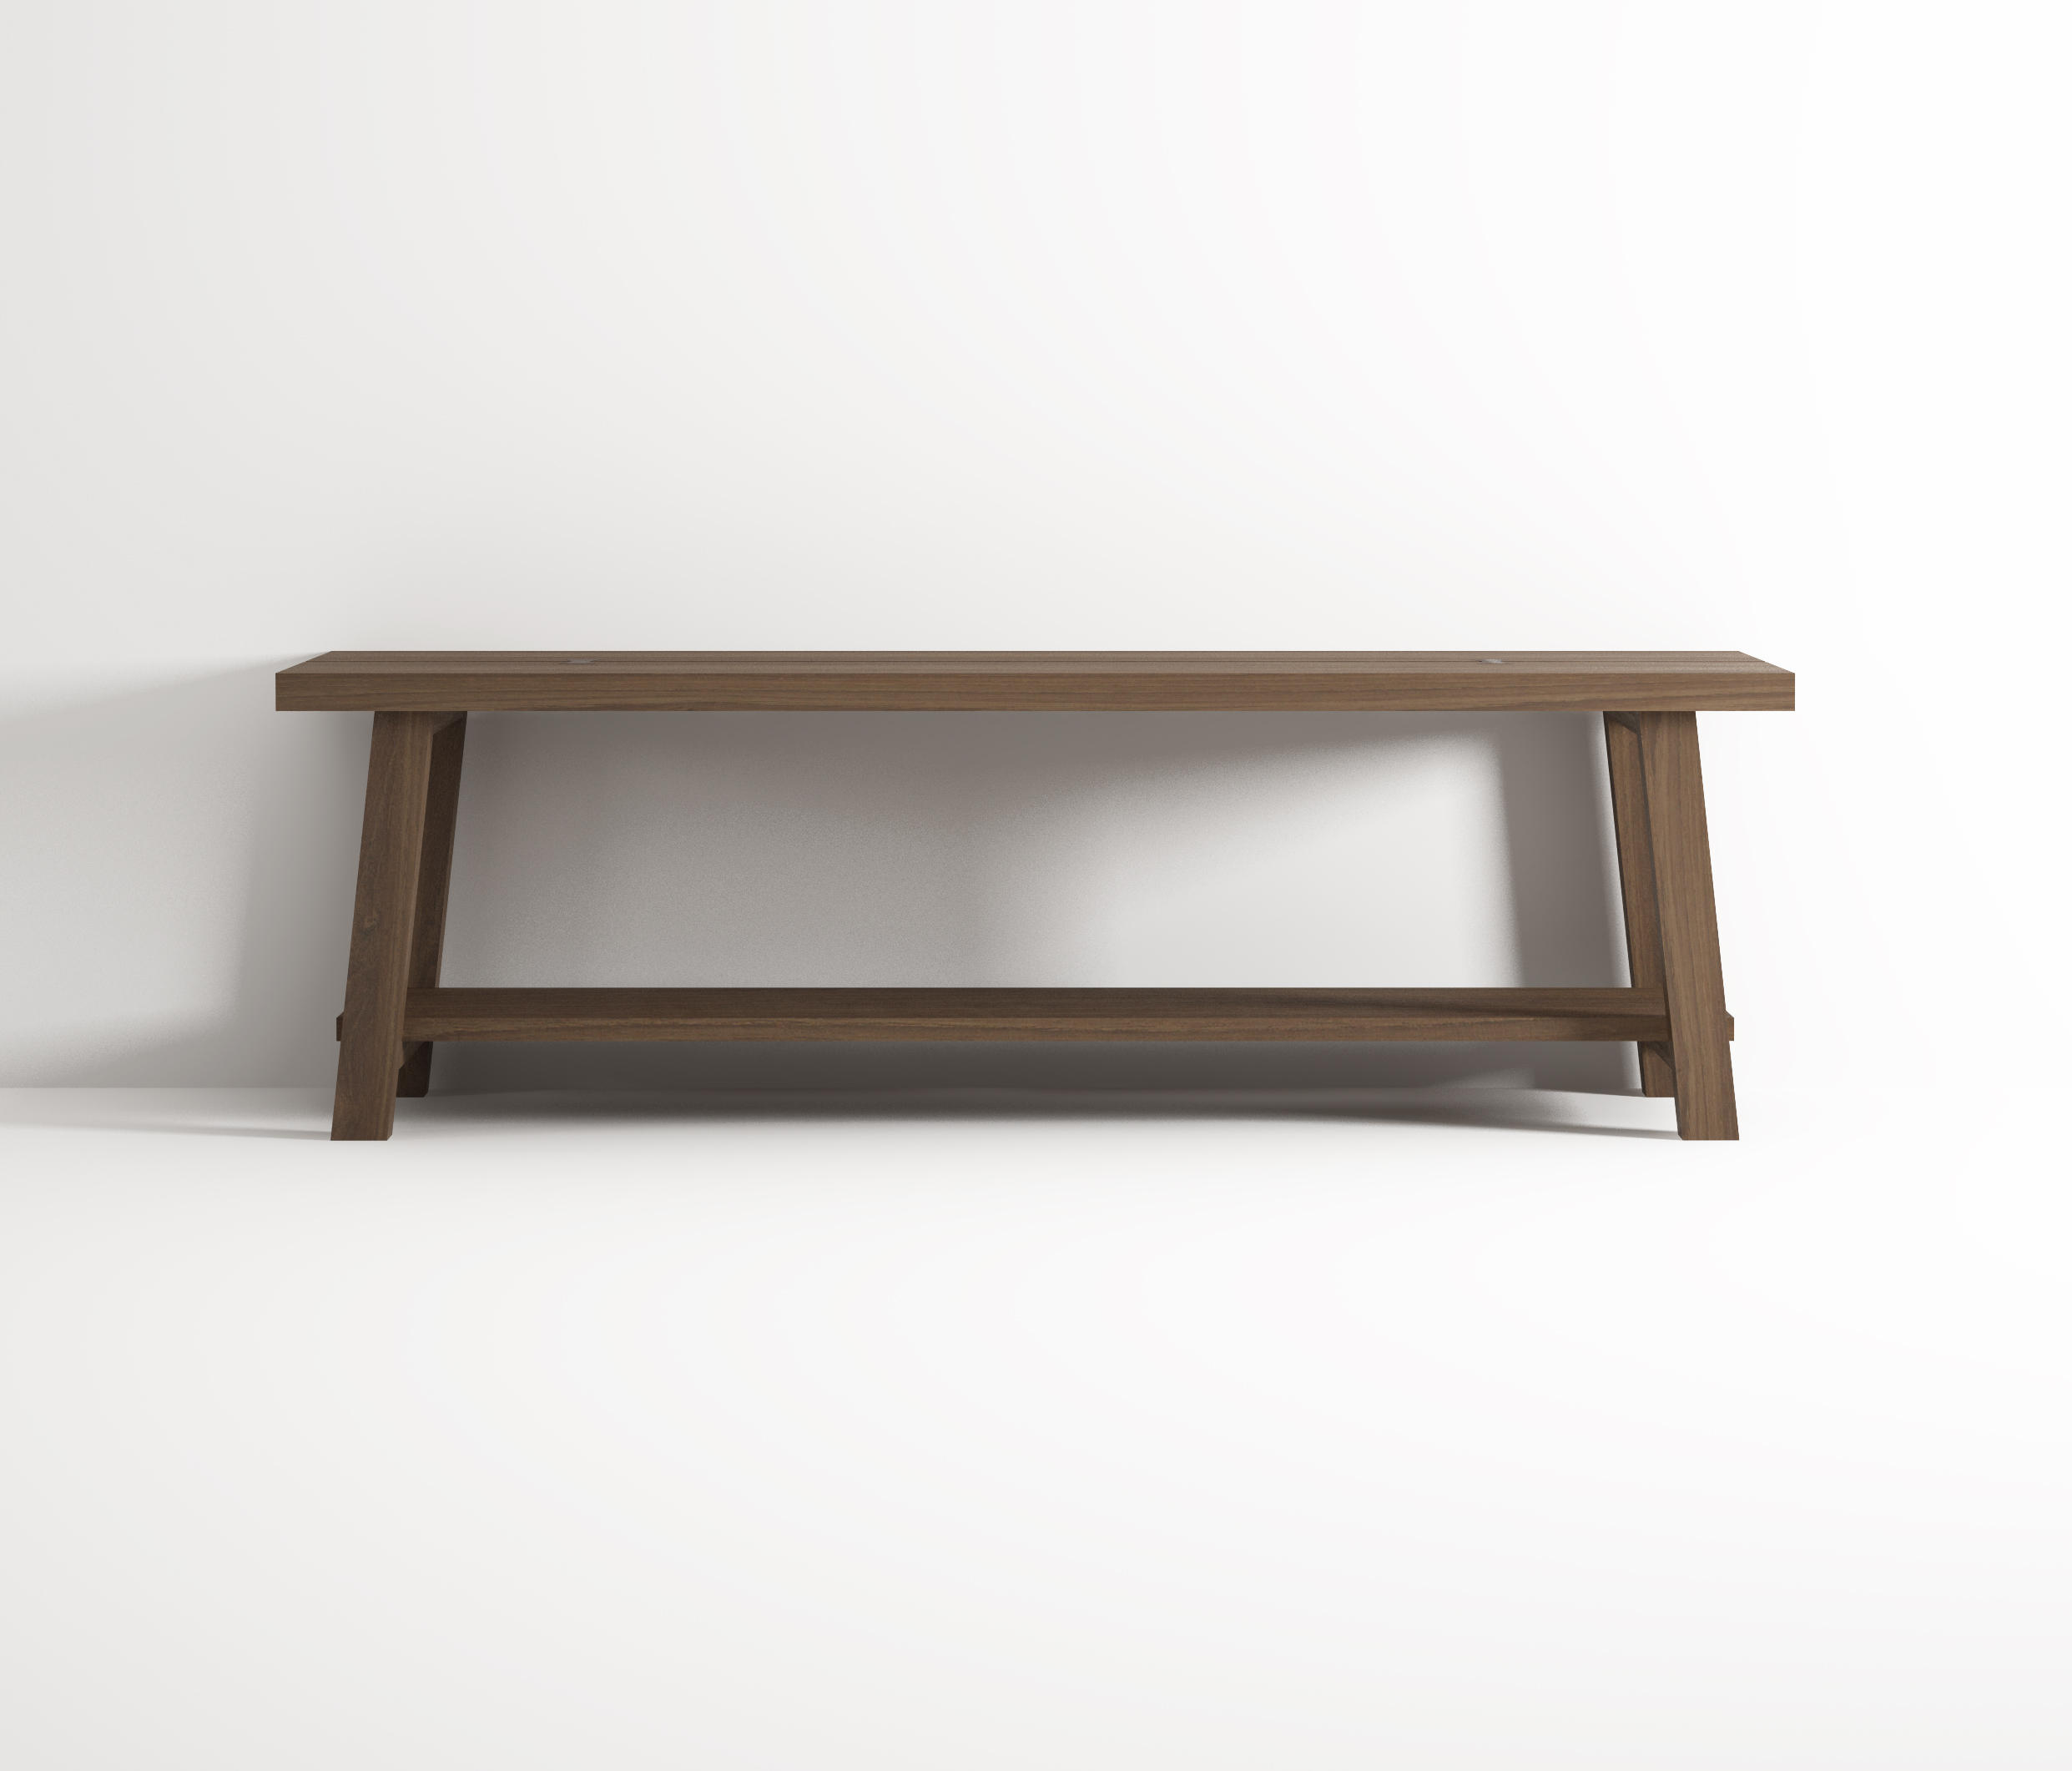 Bench With Shelf Stools Benches From Idi Studio